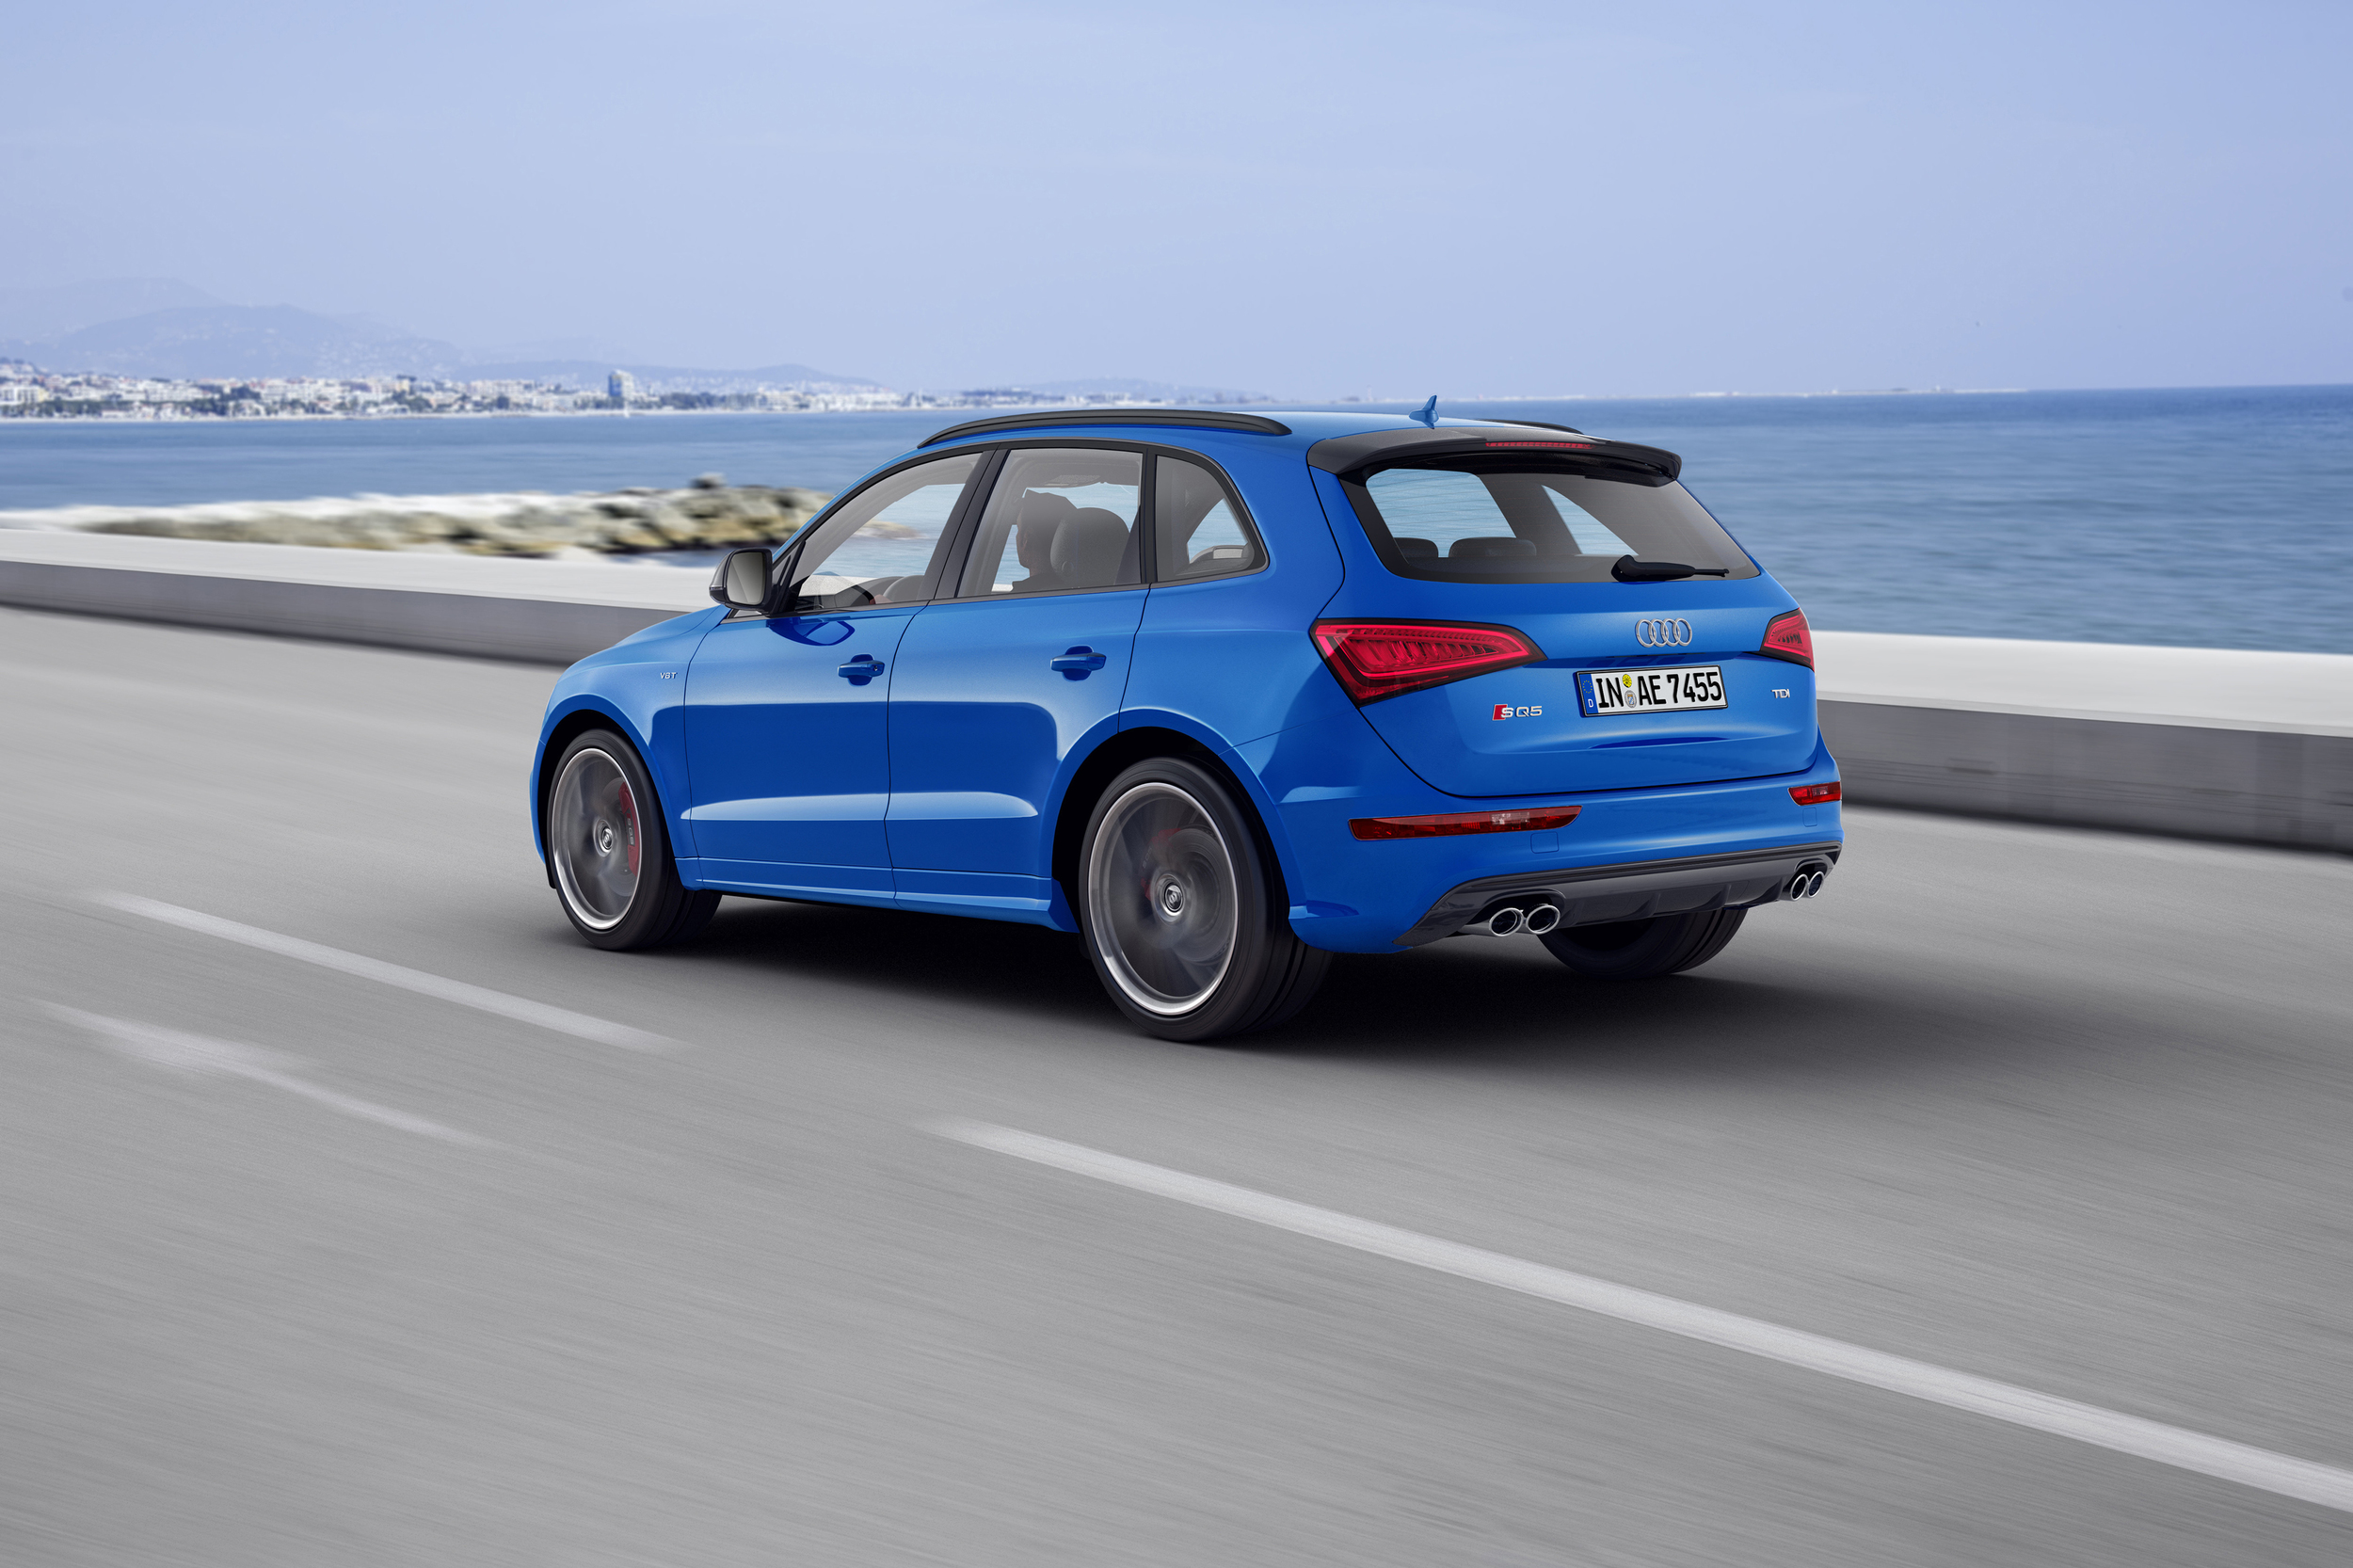 2016 Audi Sq5 Tdi Plus Rear Side Exterior (Photo 9 of 9)